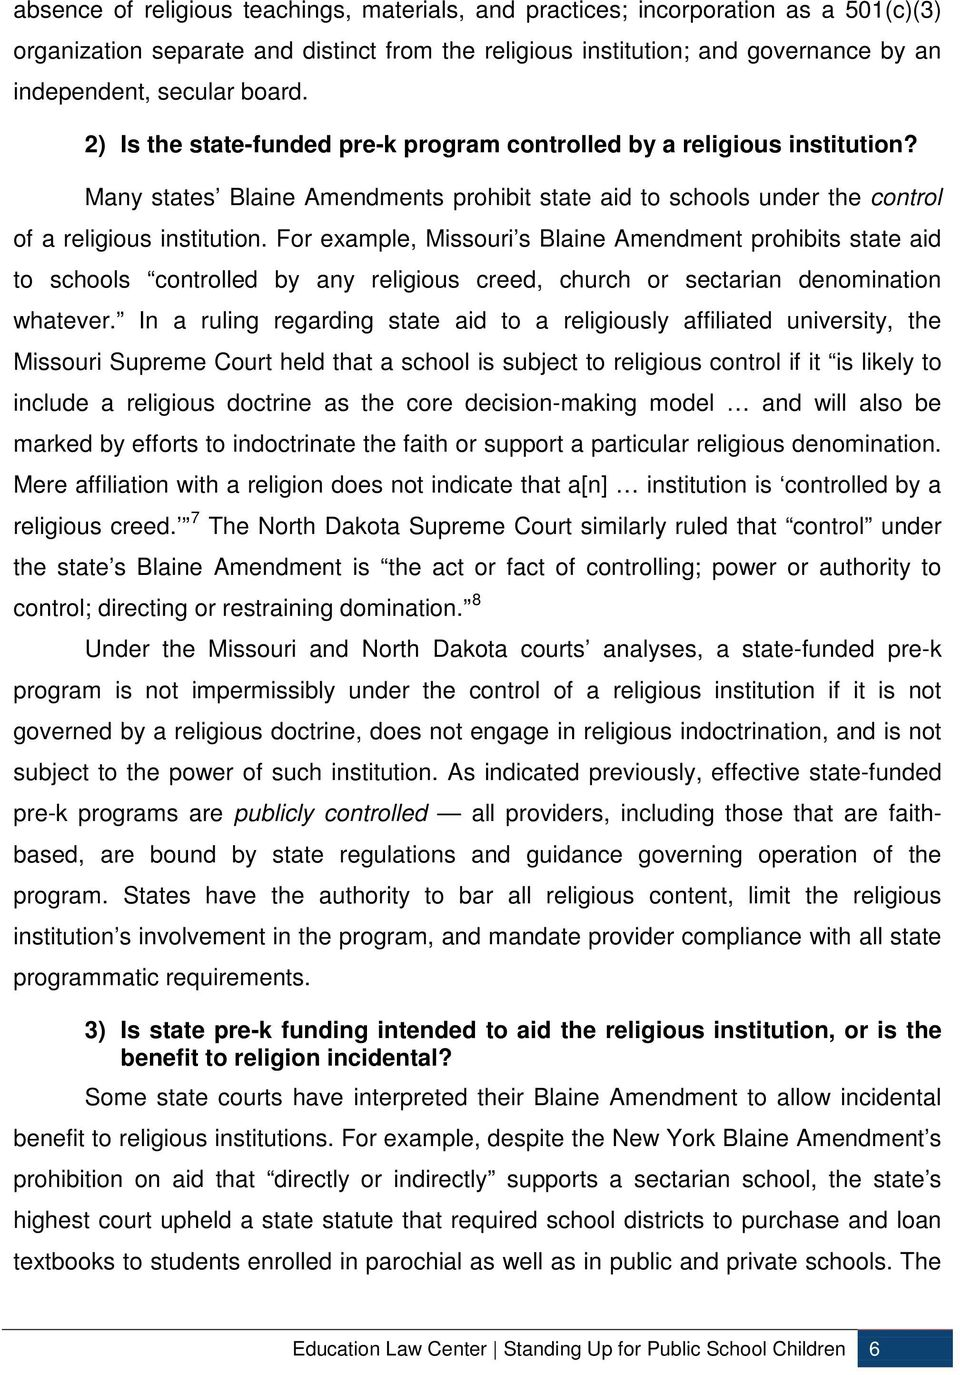 For example, Missouri s Blaine Amendment prohibits state aid to schools controlled by any religious creed, church or sectarian denomination whatever.